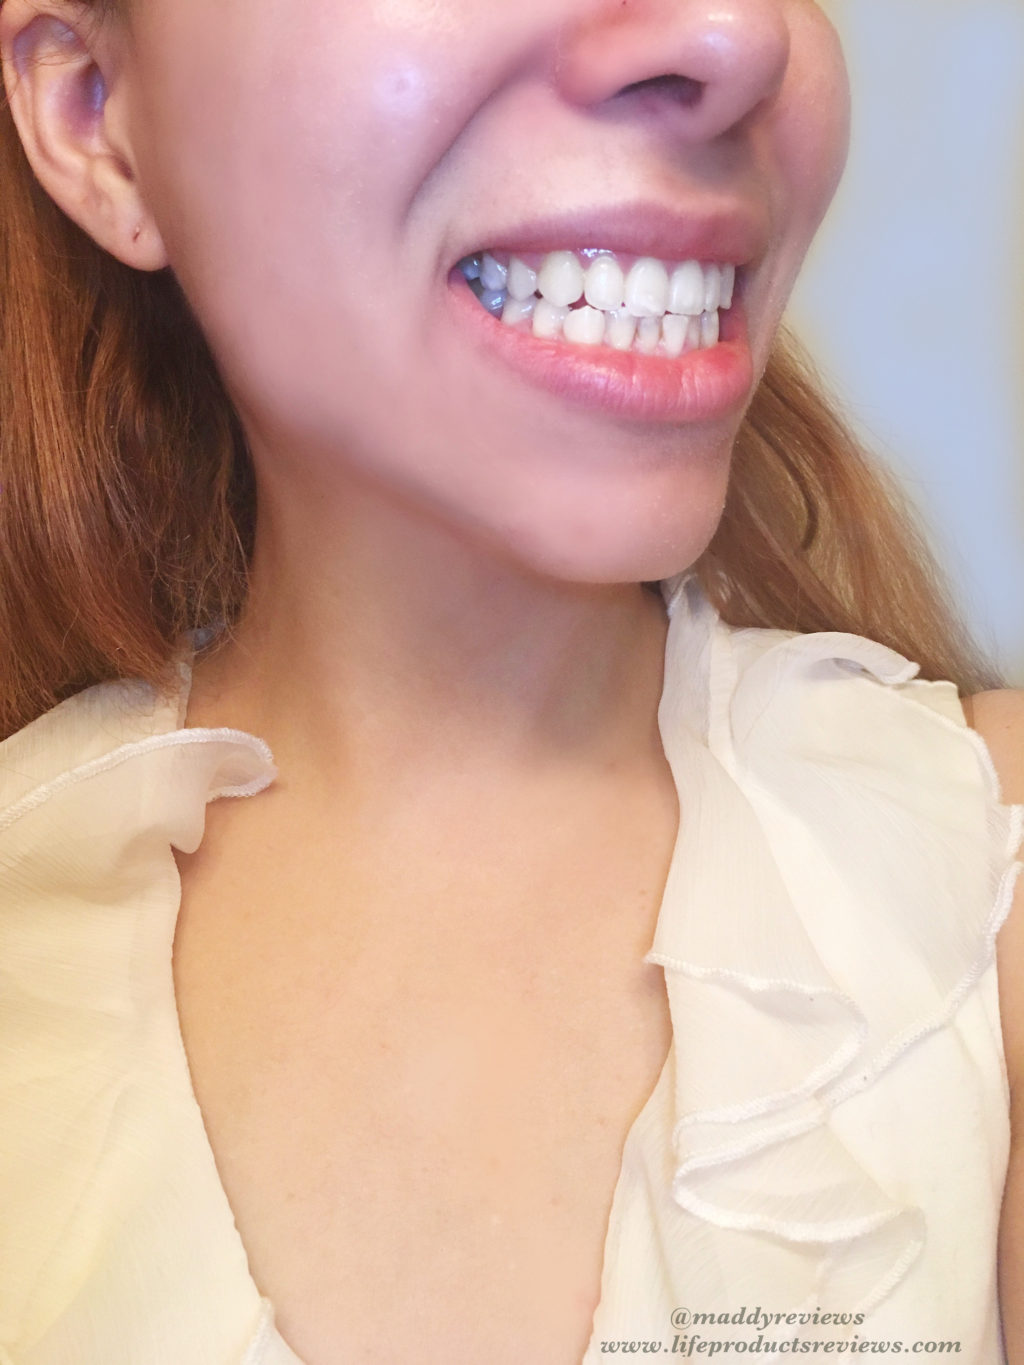 After-Right-side-result-yellow-stain-teeth-results-smile-brilliant-pearly-whites-whitening-effect